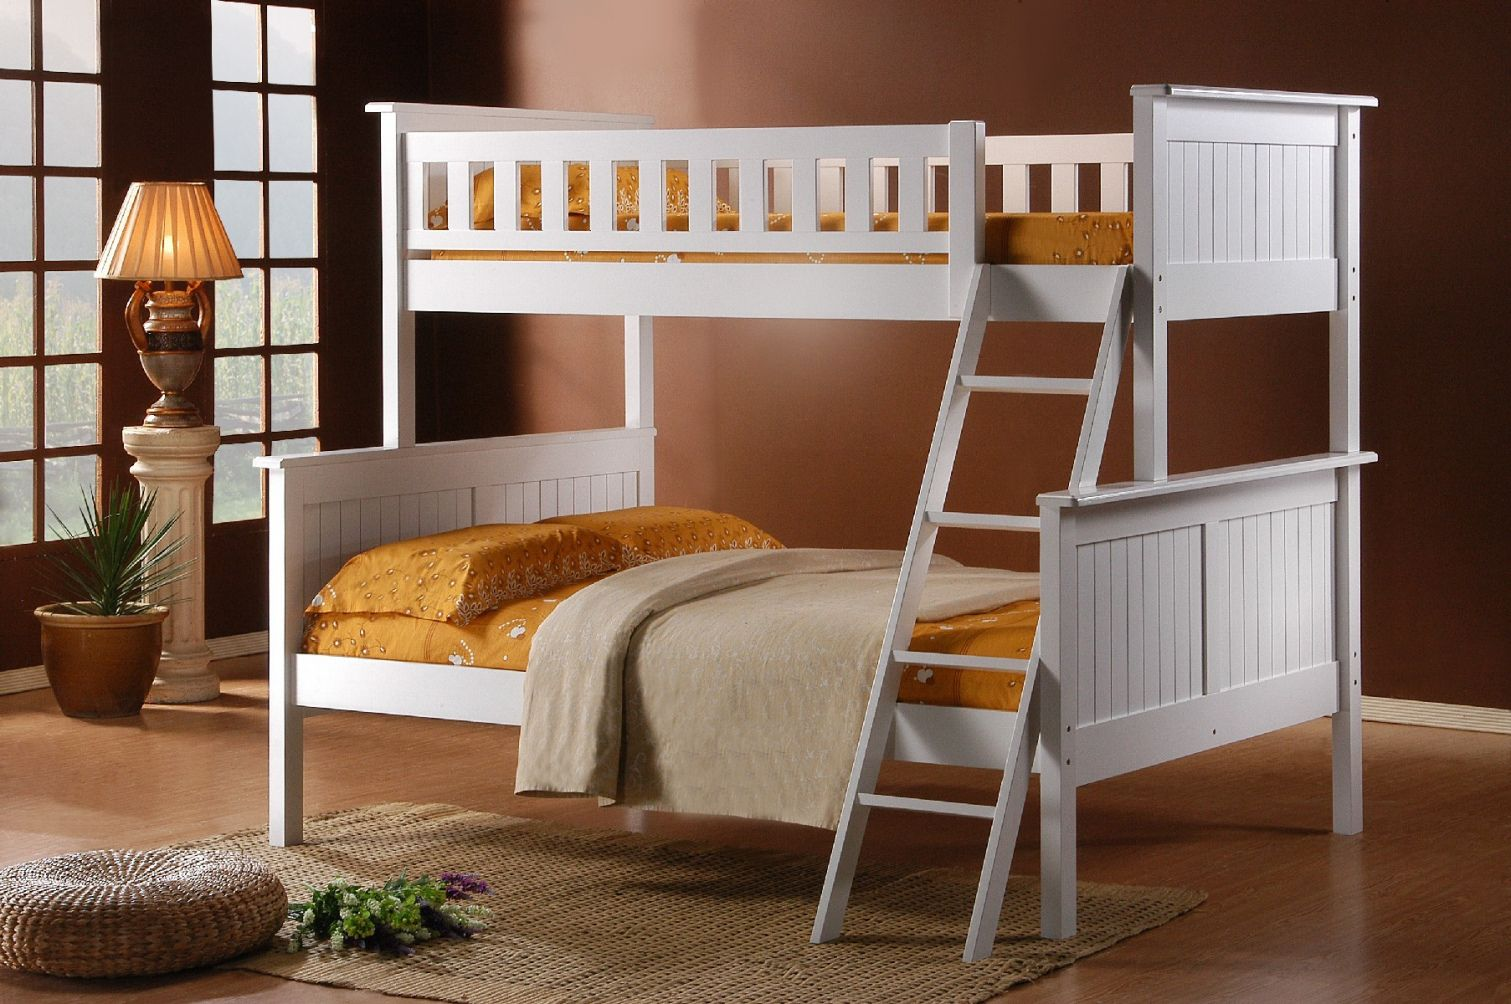 Kids Single Bunk Bed Best Interior Paint Brands Check More At Http